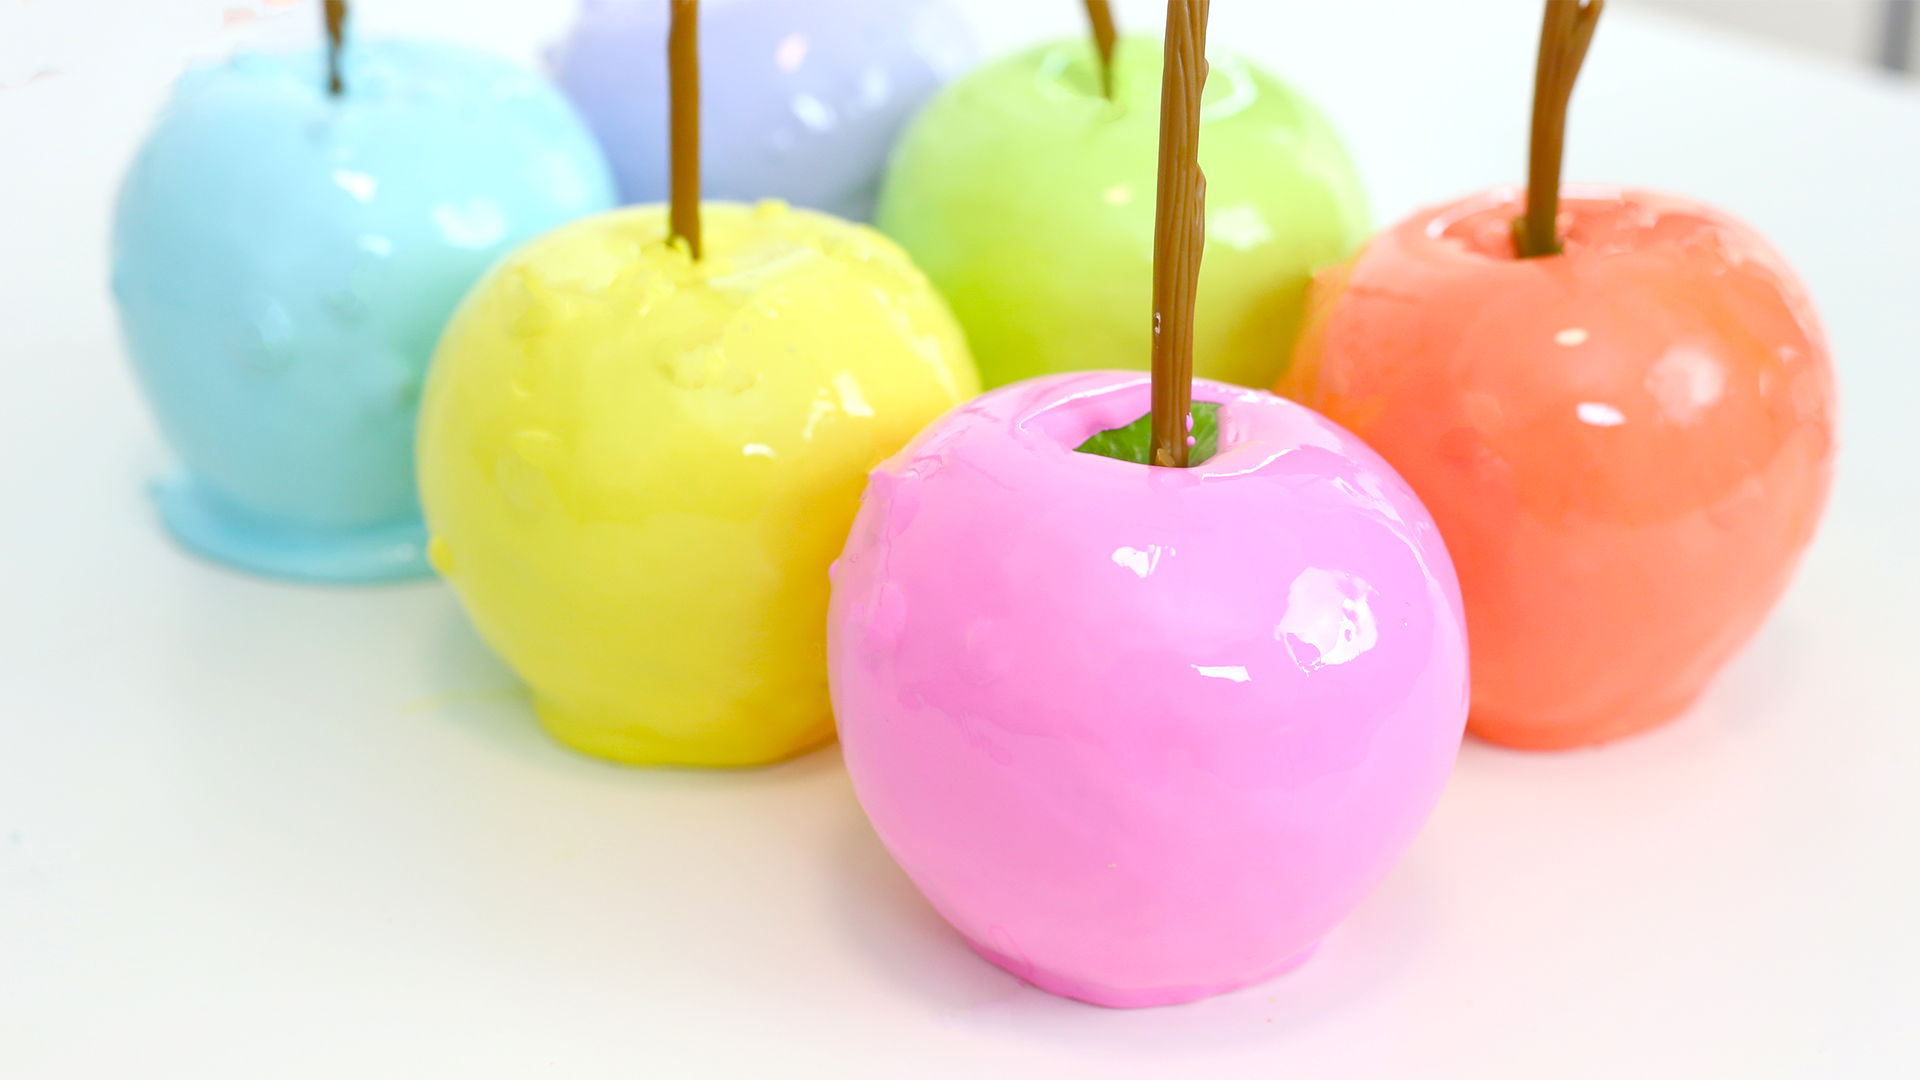 Rainbow Candy Apples Tastemade